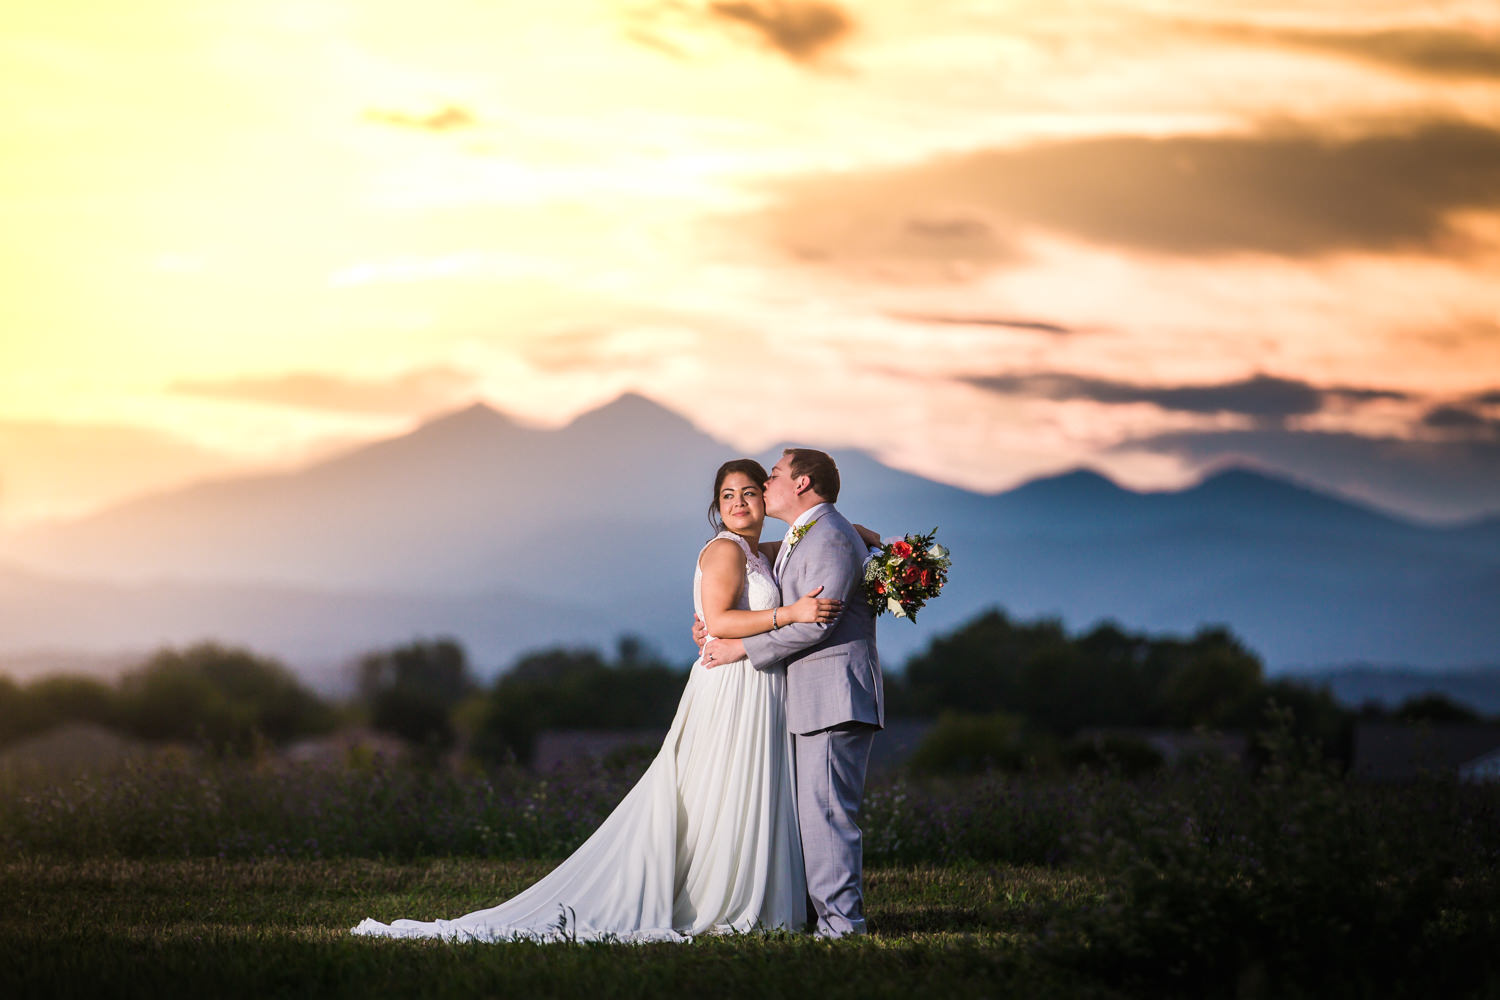 Brookside Wedding | Berthoud Colorado wedding photographer | © JMGant Photography | http://www.jmgantphotography.com/